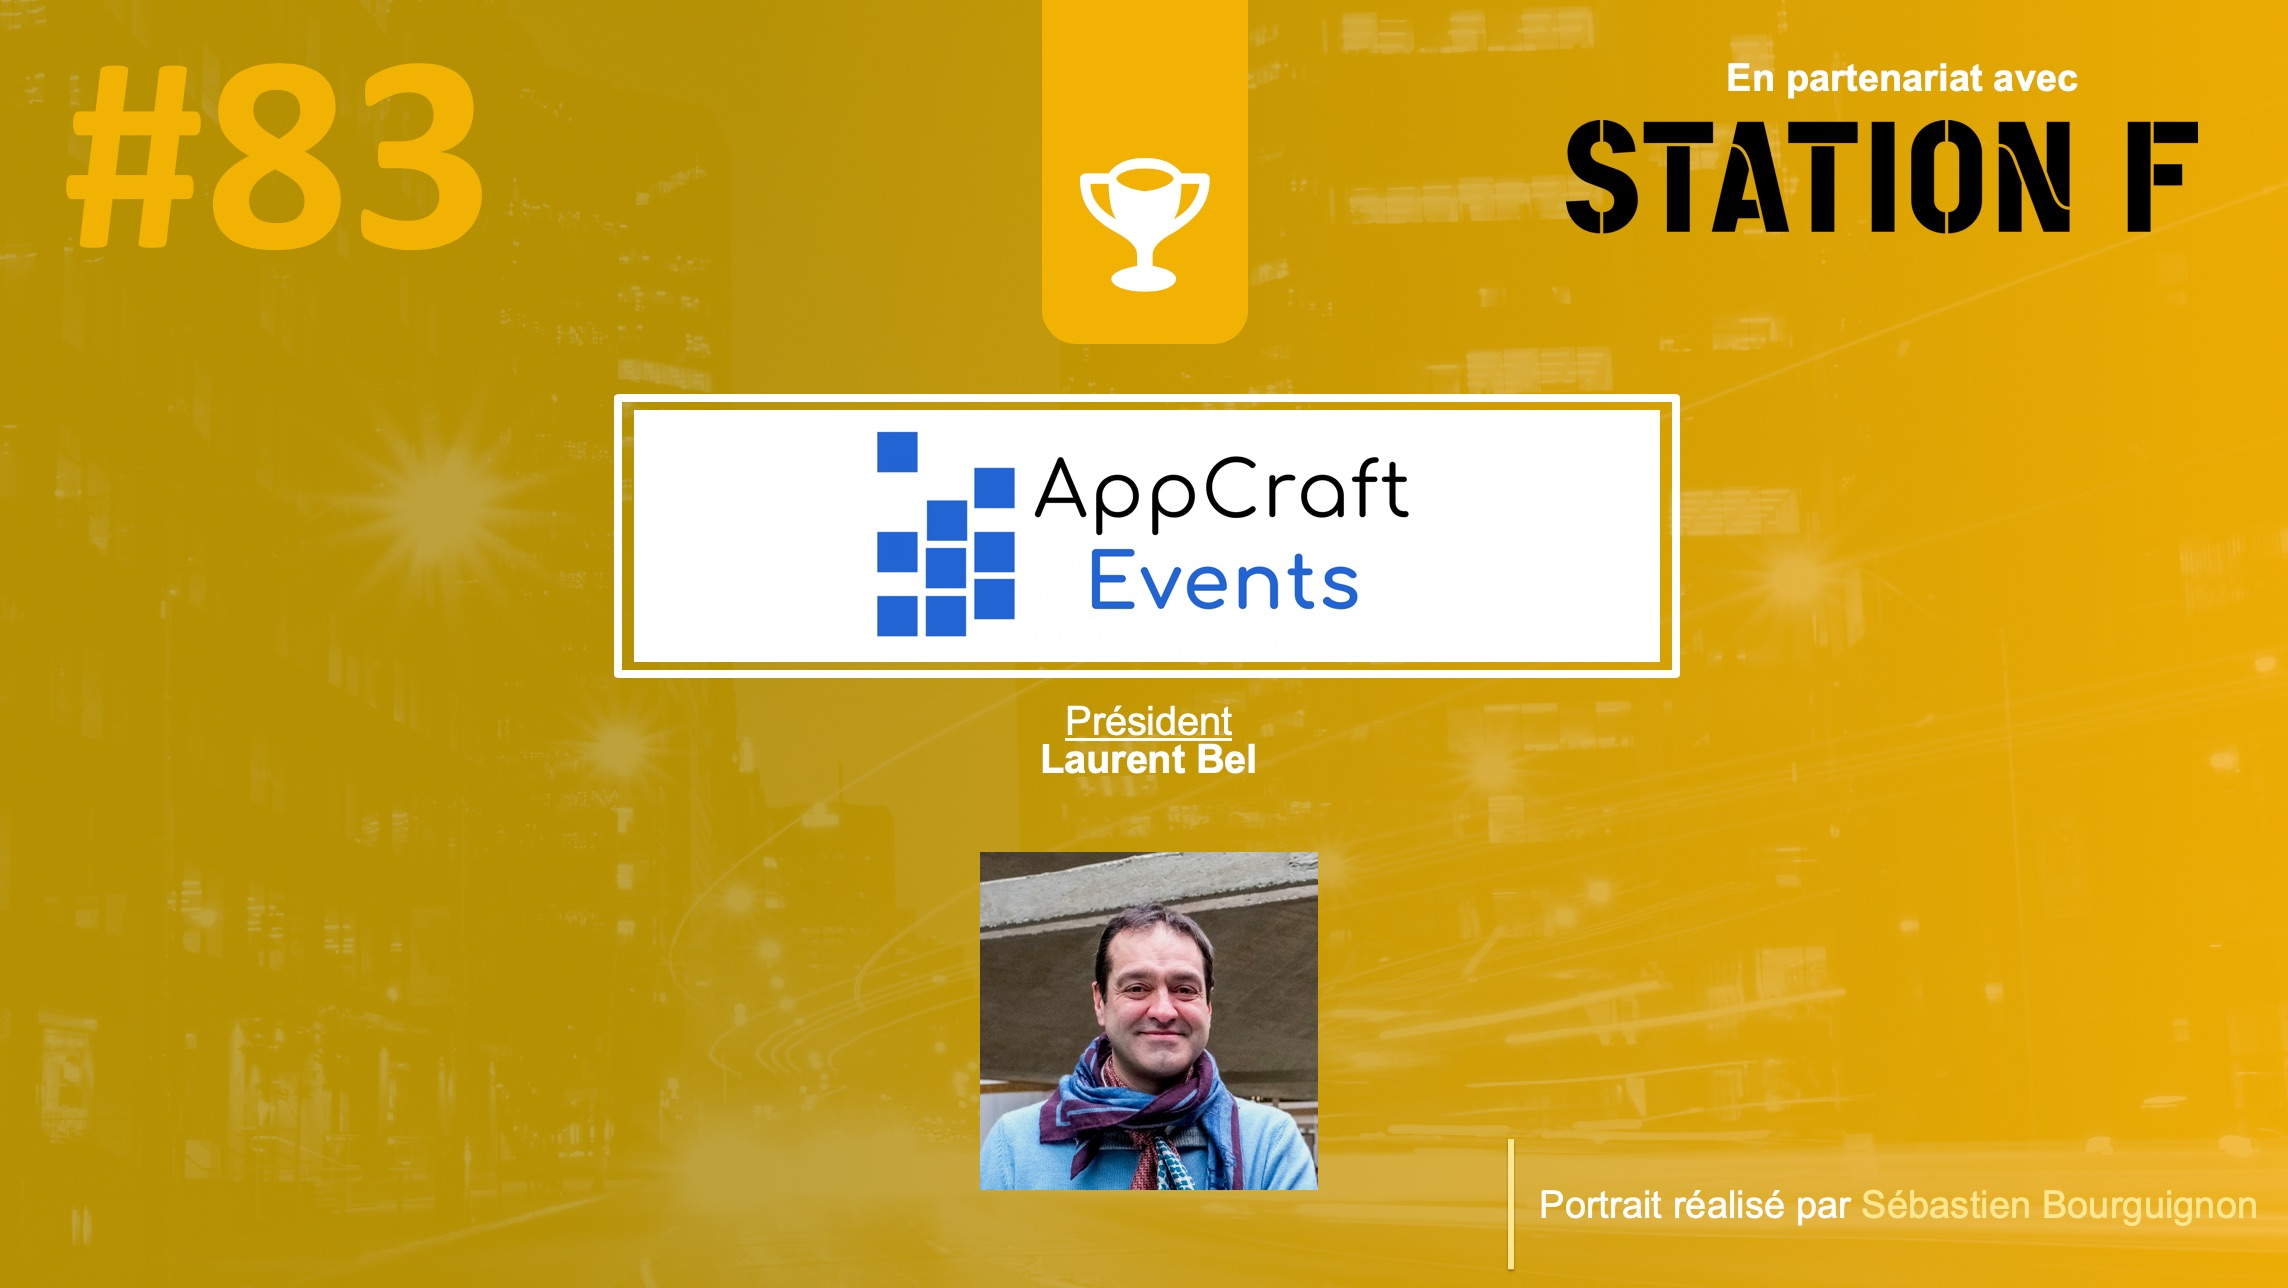 appcraft events